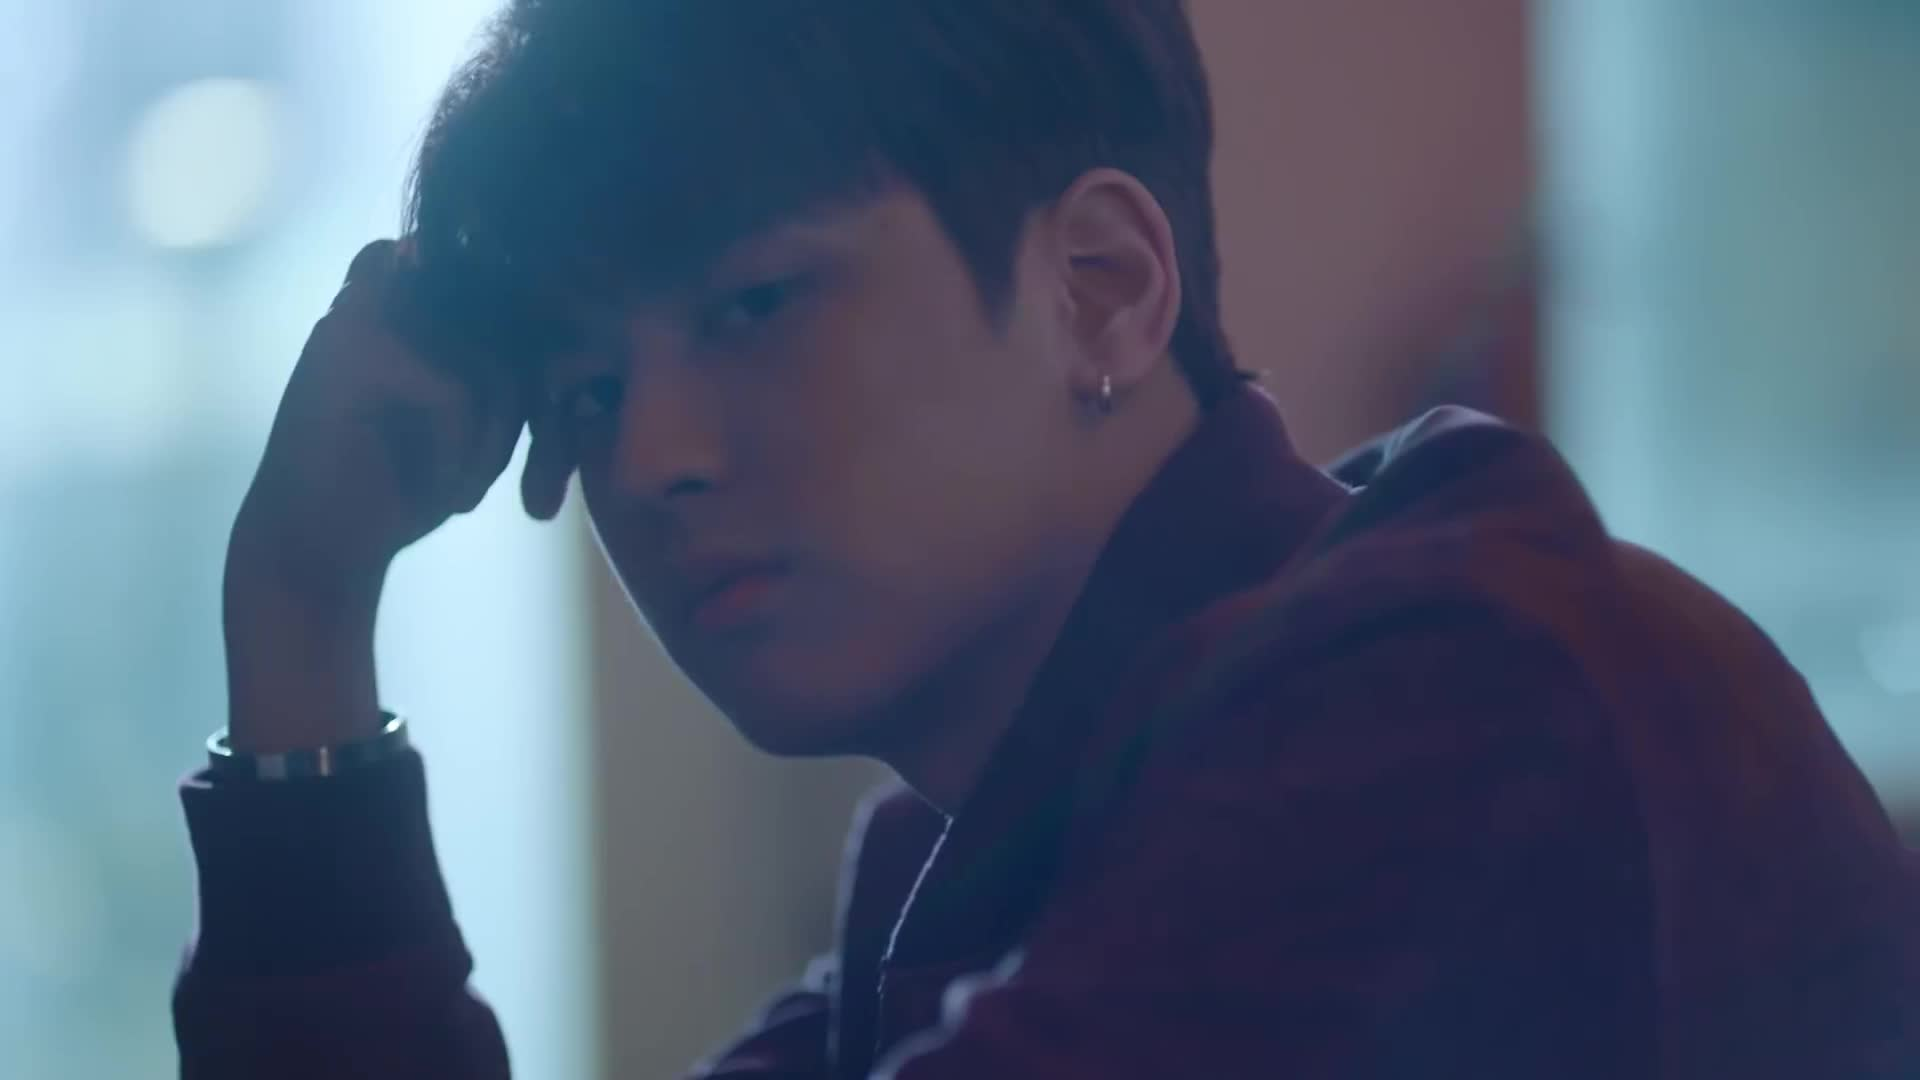 chanwoo love scenario gif by youngthek find download share